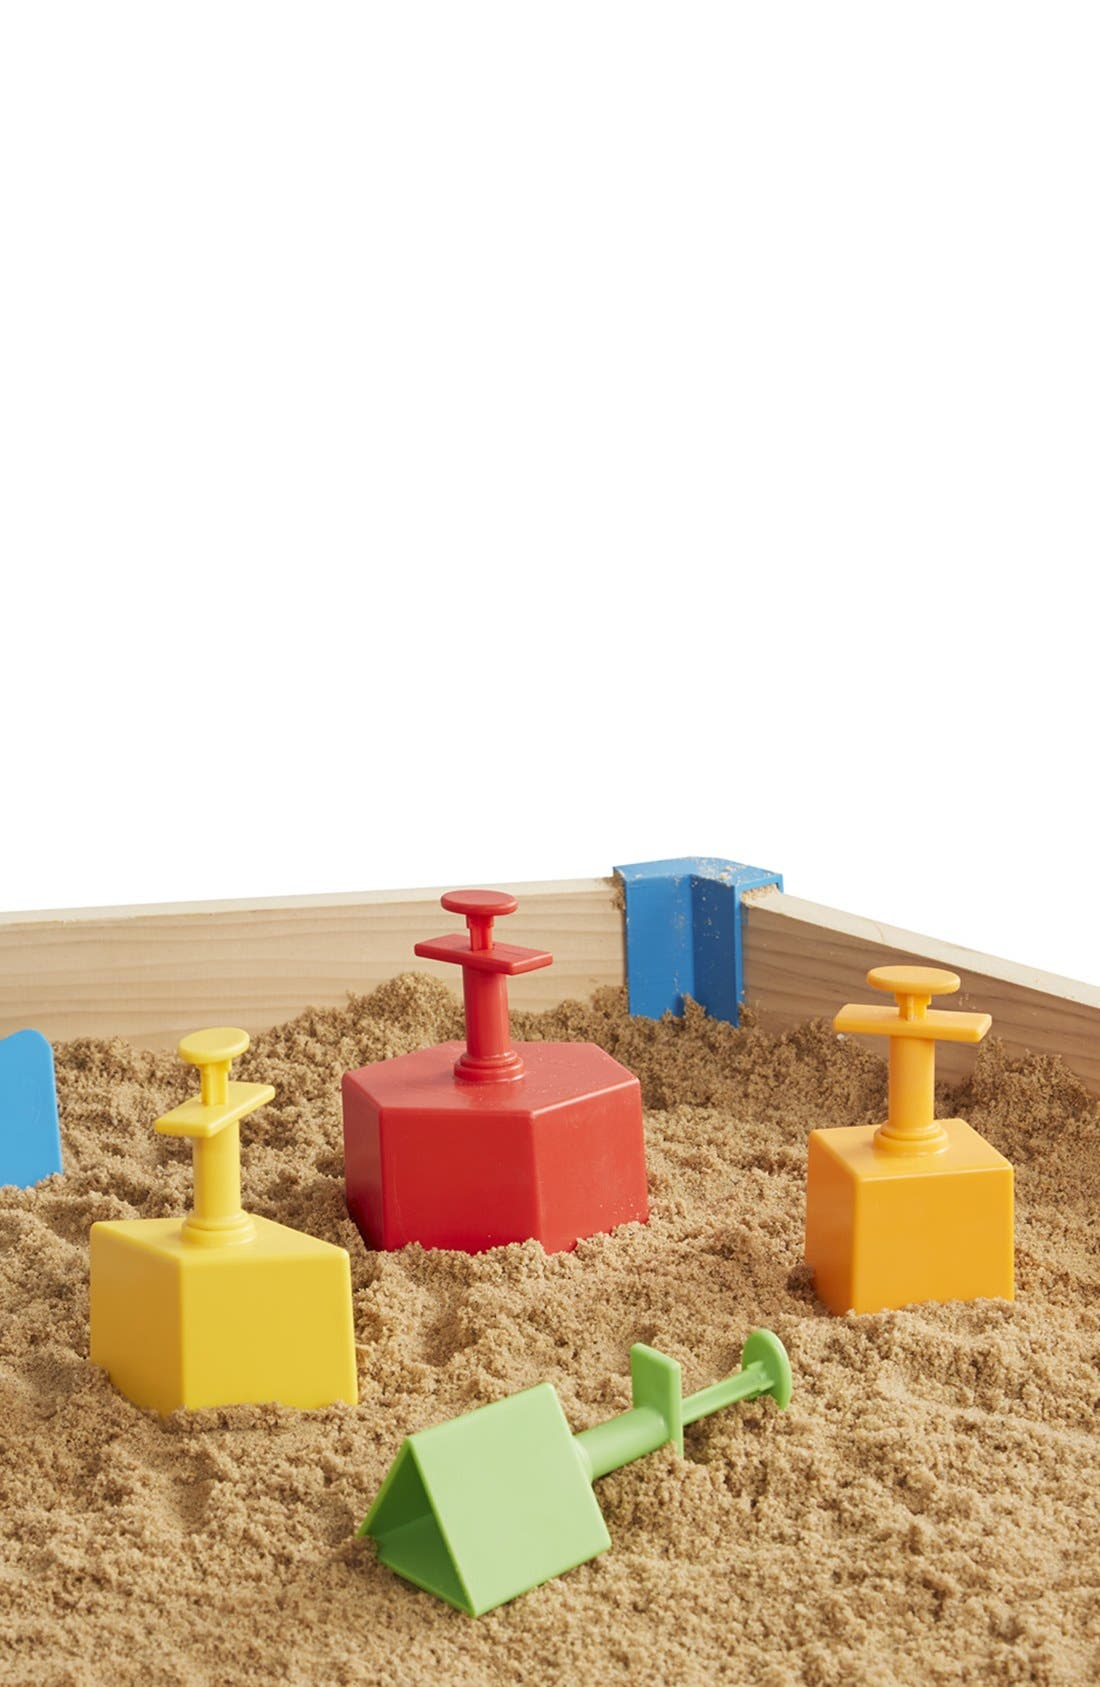 Main Image - Melissa & Doug 'SandBlox' Sand Box Set